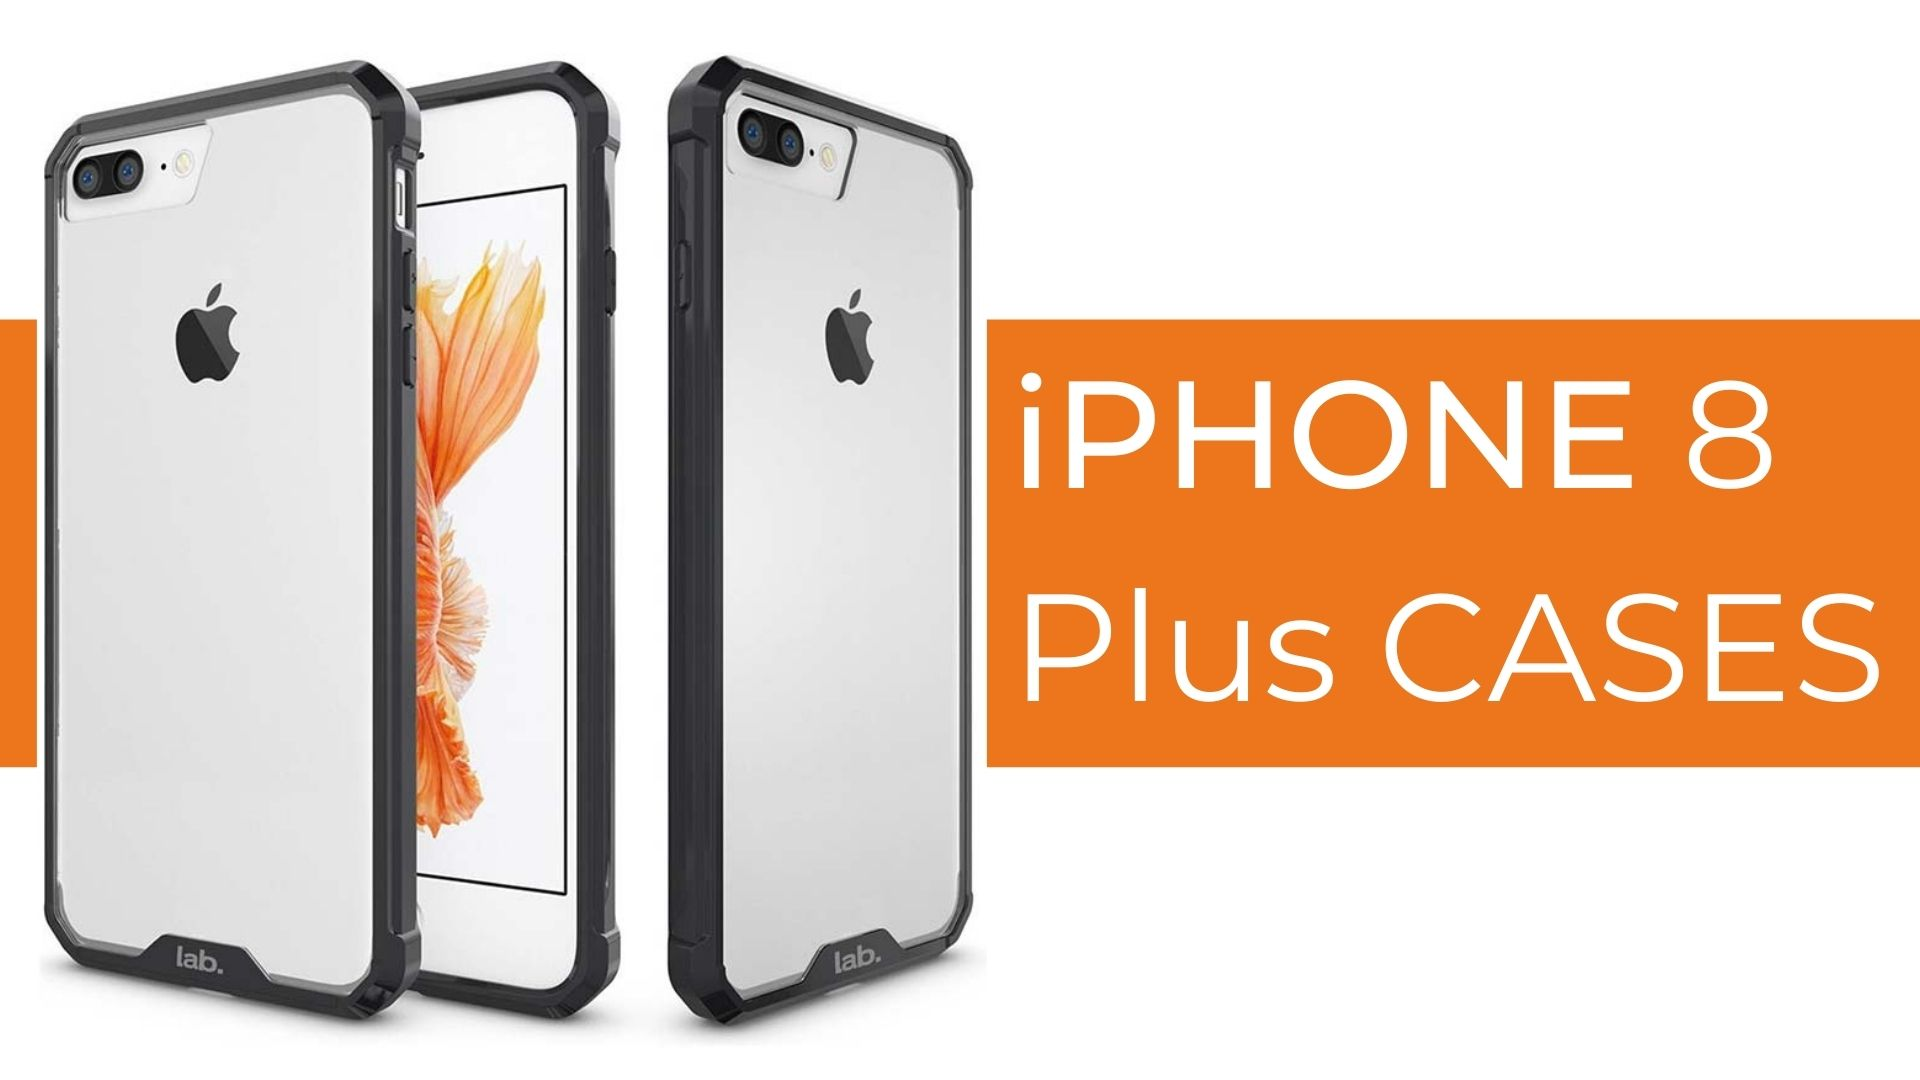 iPHONE 8 Plus CASES